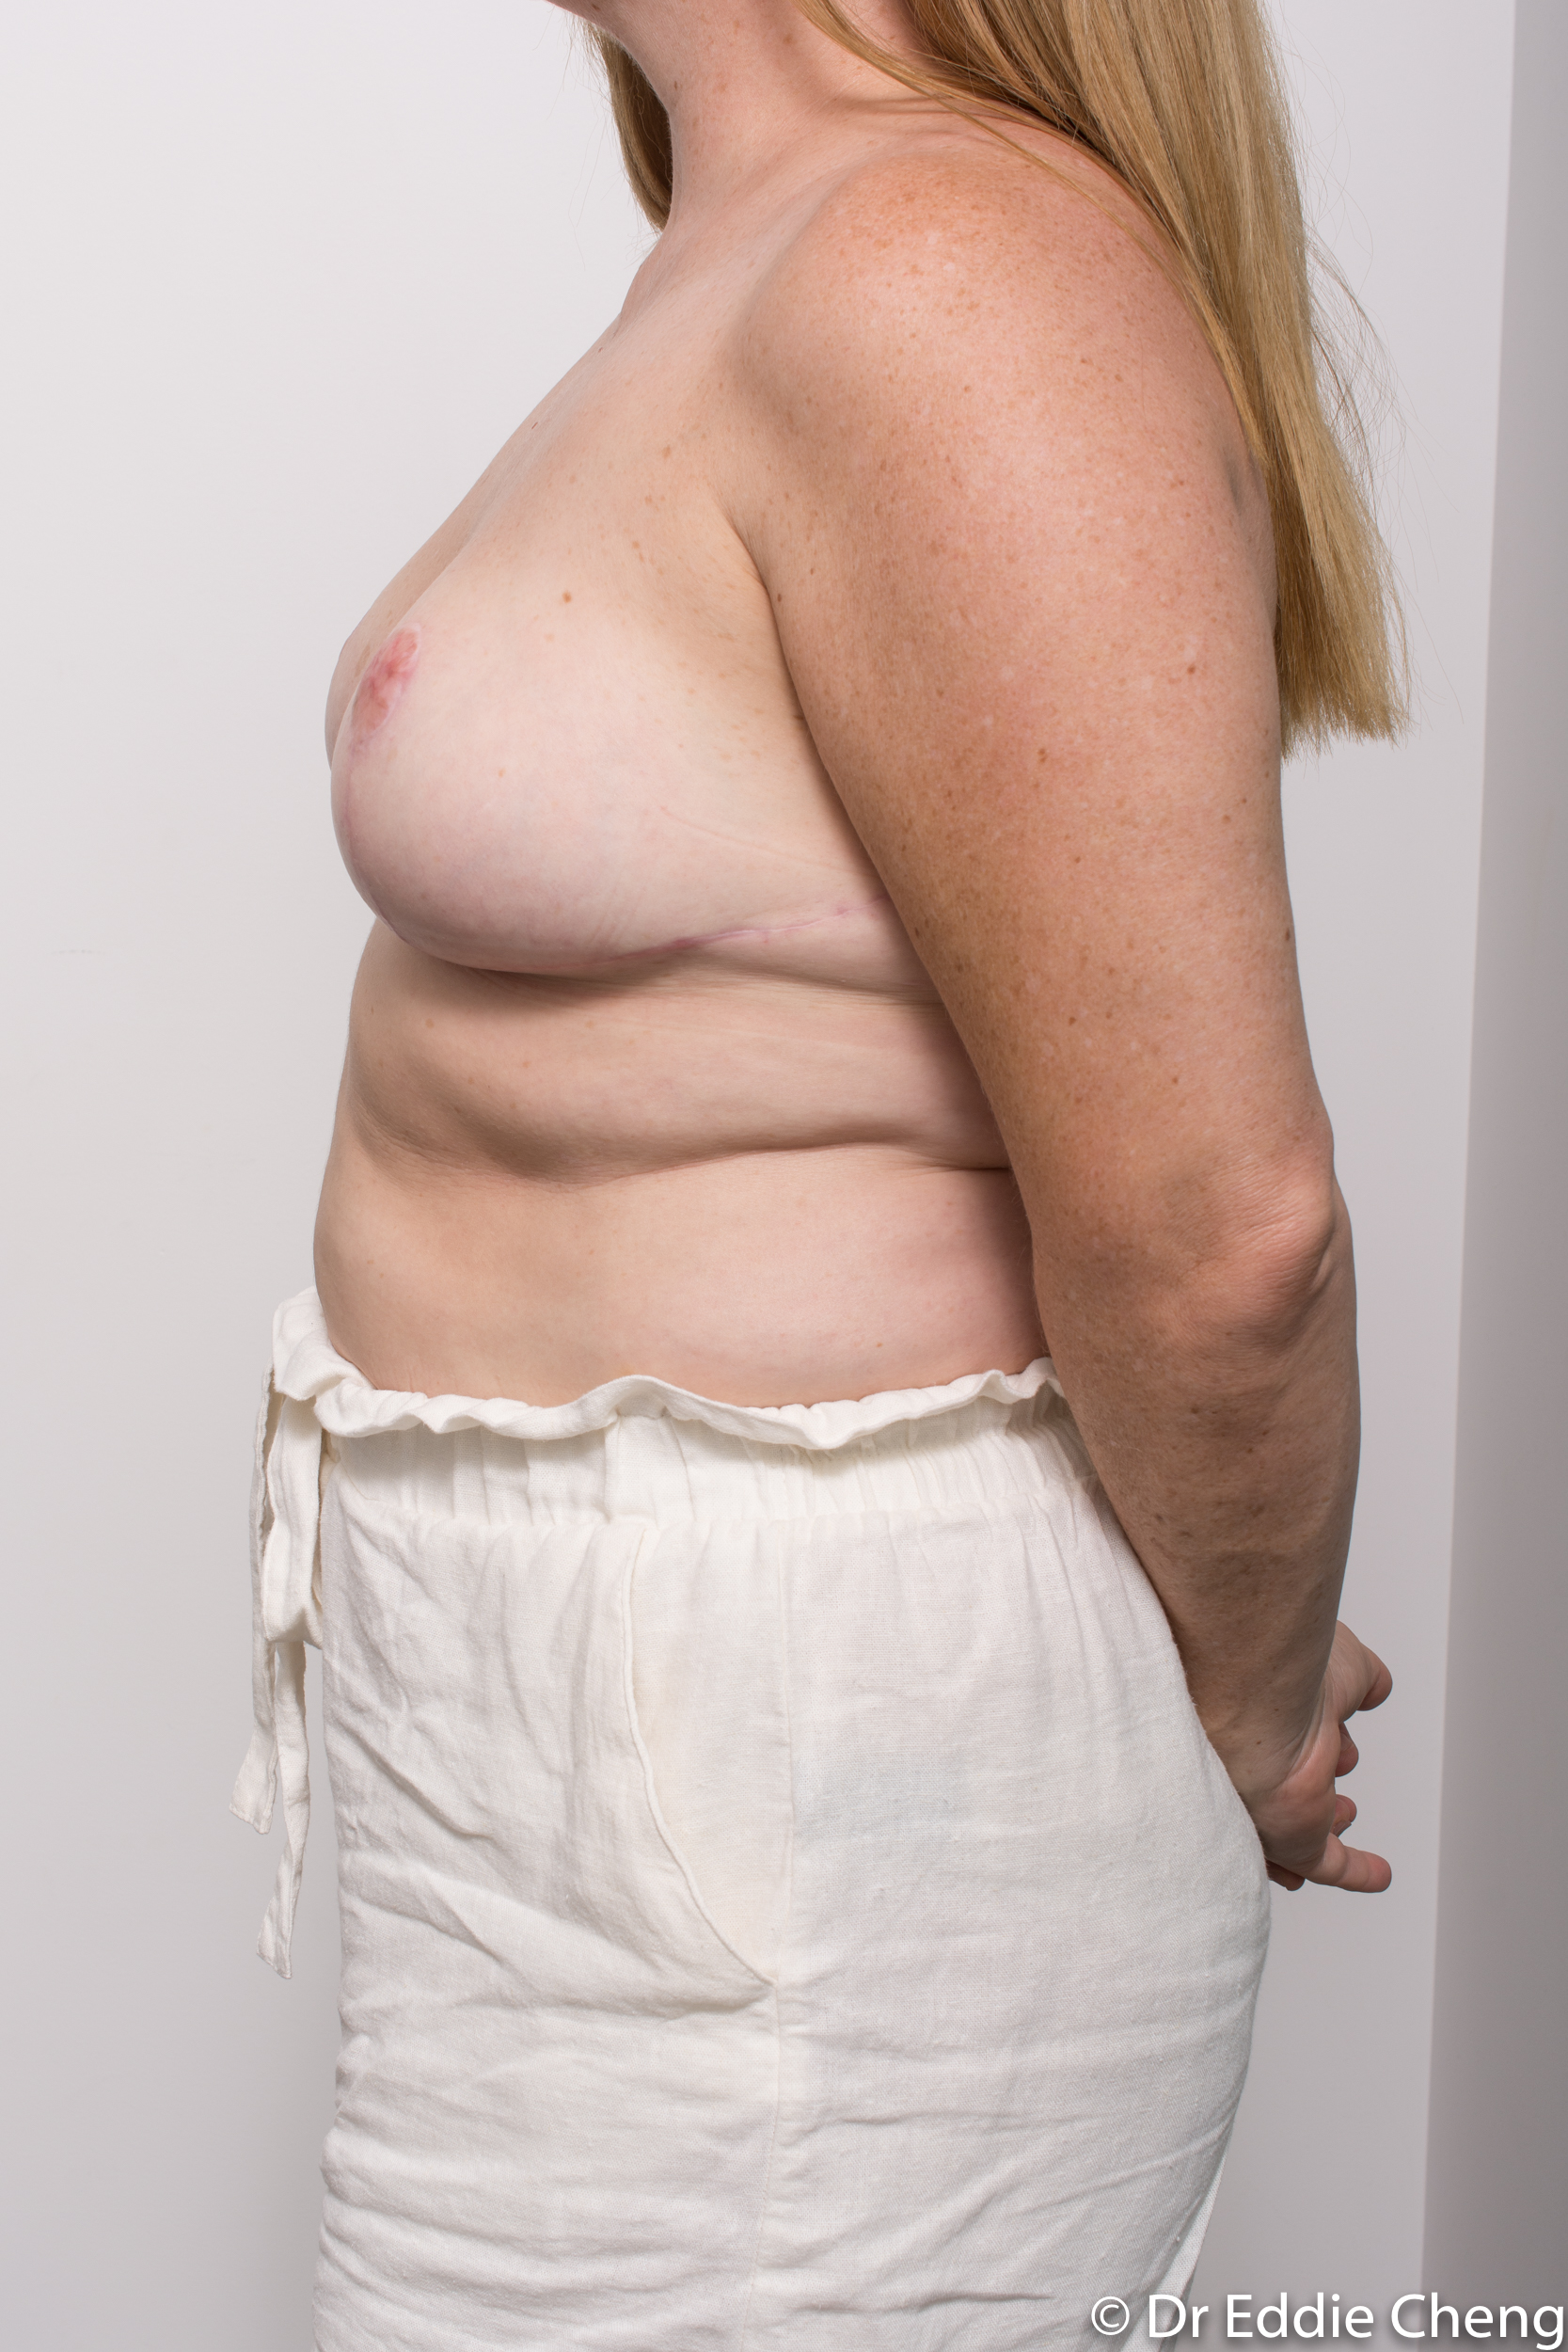 breast reduction dr eddie cheng brisbane surgeon pre and post operative images-8